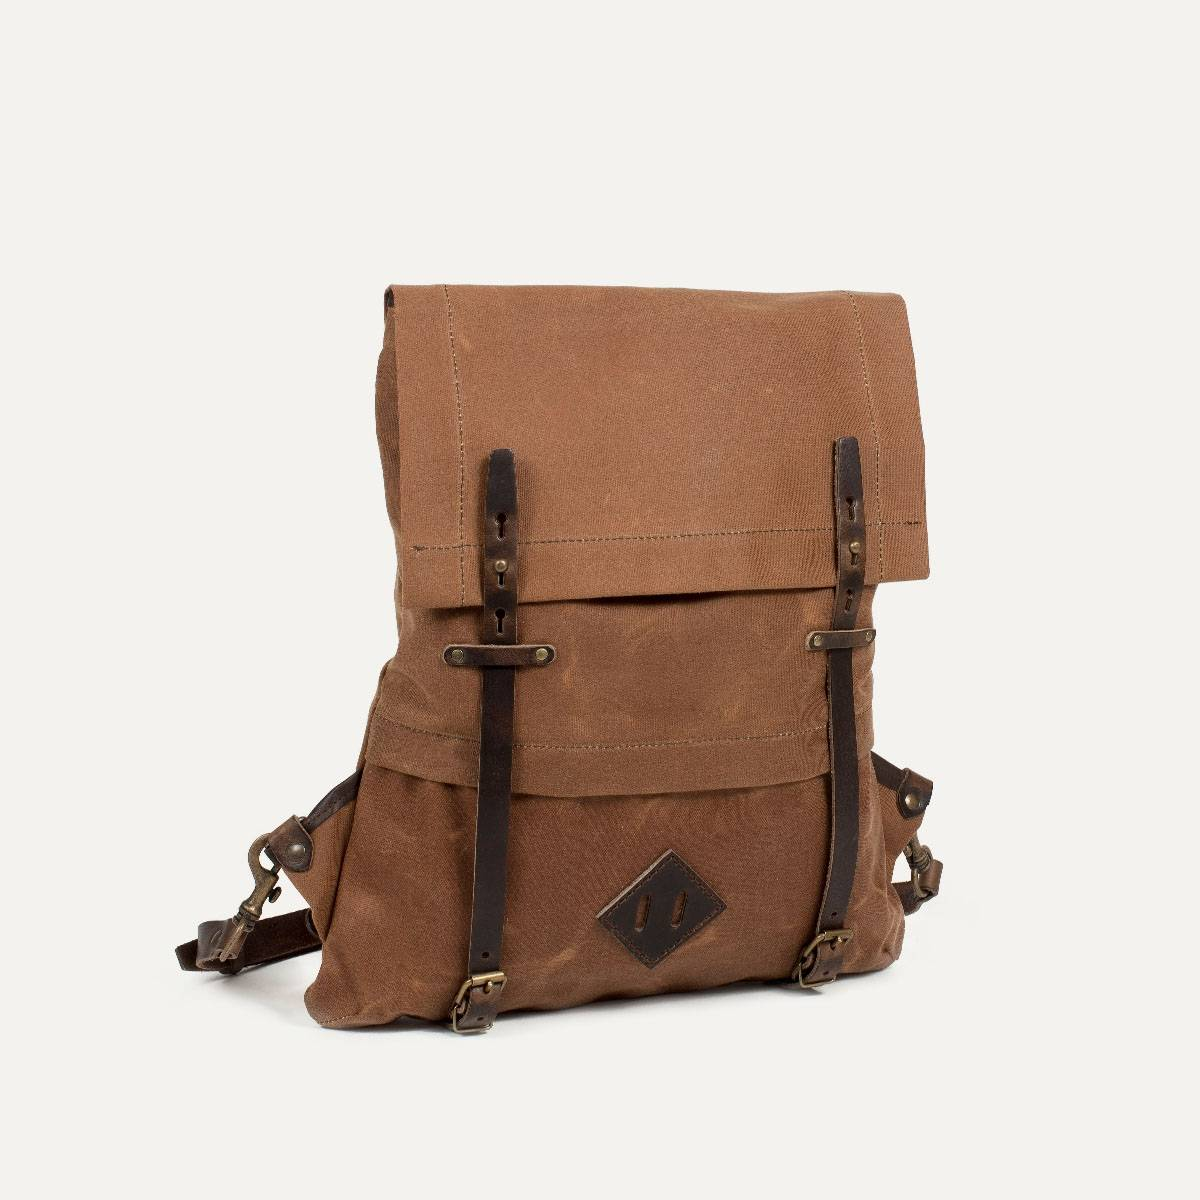 Coursier backpack WAXY - Camel/Brown (image n°2)